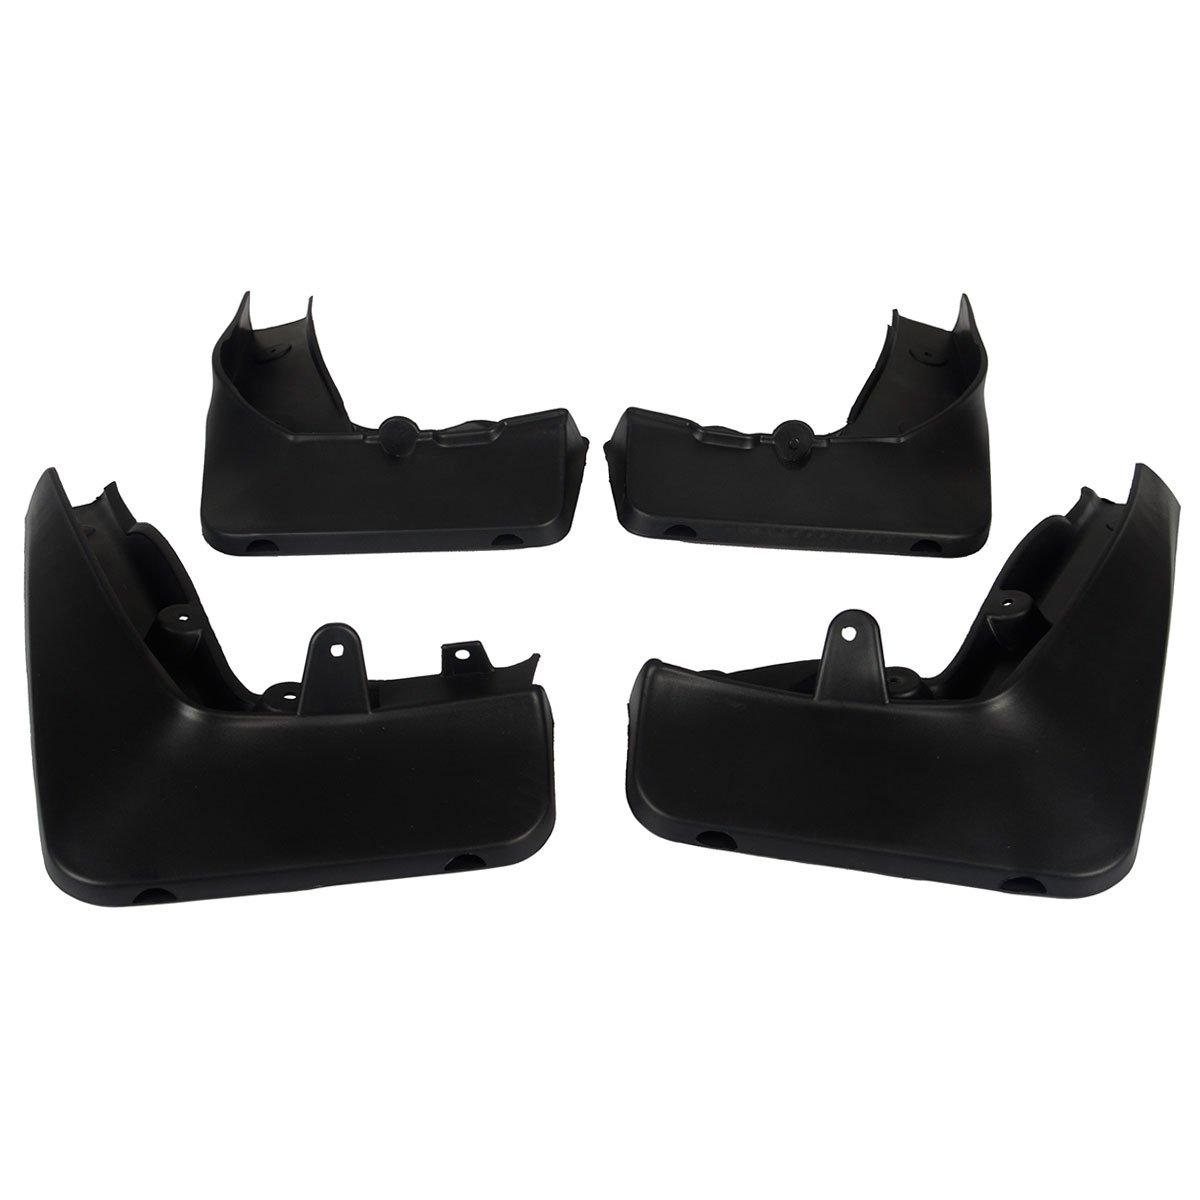 Set of 4 Front and Rear Mud Flaps Splash Guards for BMW E84 X1 2010-2015 YTAUTOPARTS